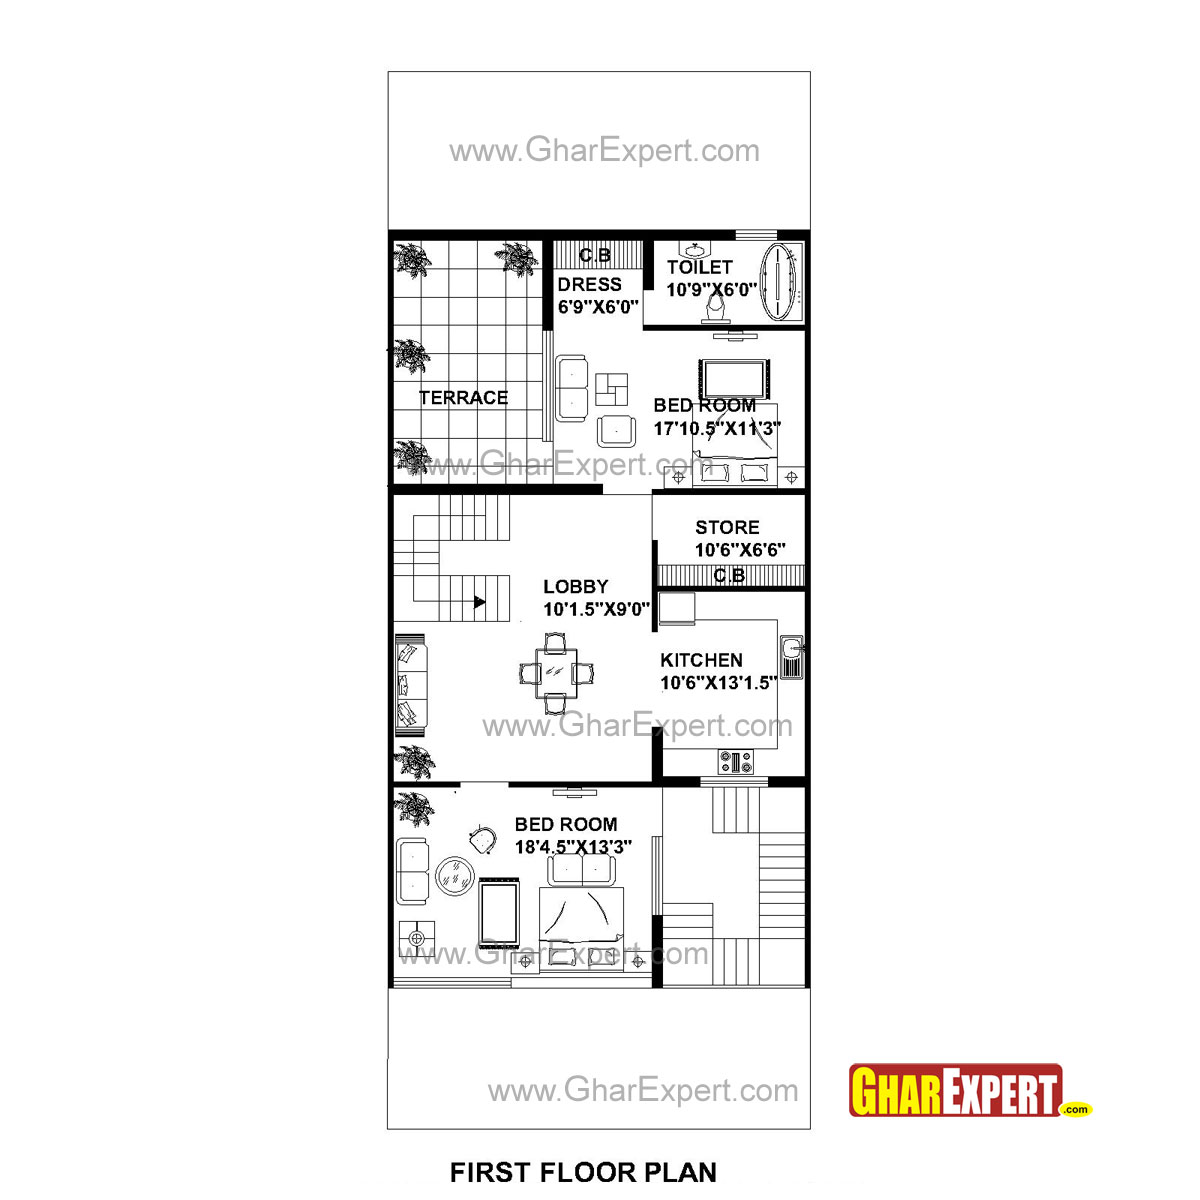 100 30 sq meters to feet 150 meters to feet 250 square foot apartment floor plan